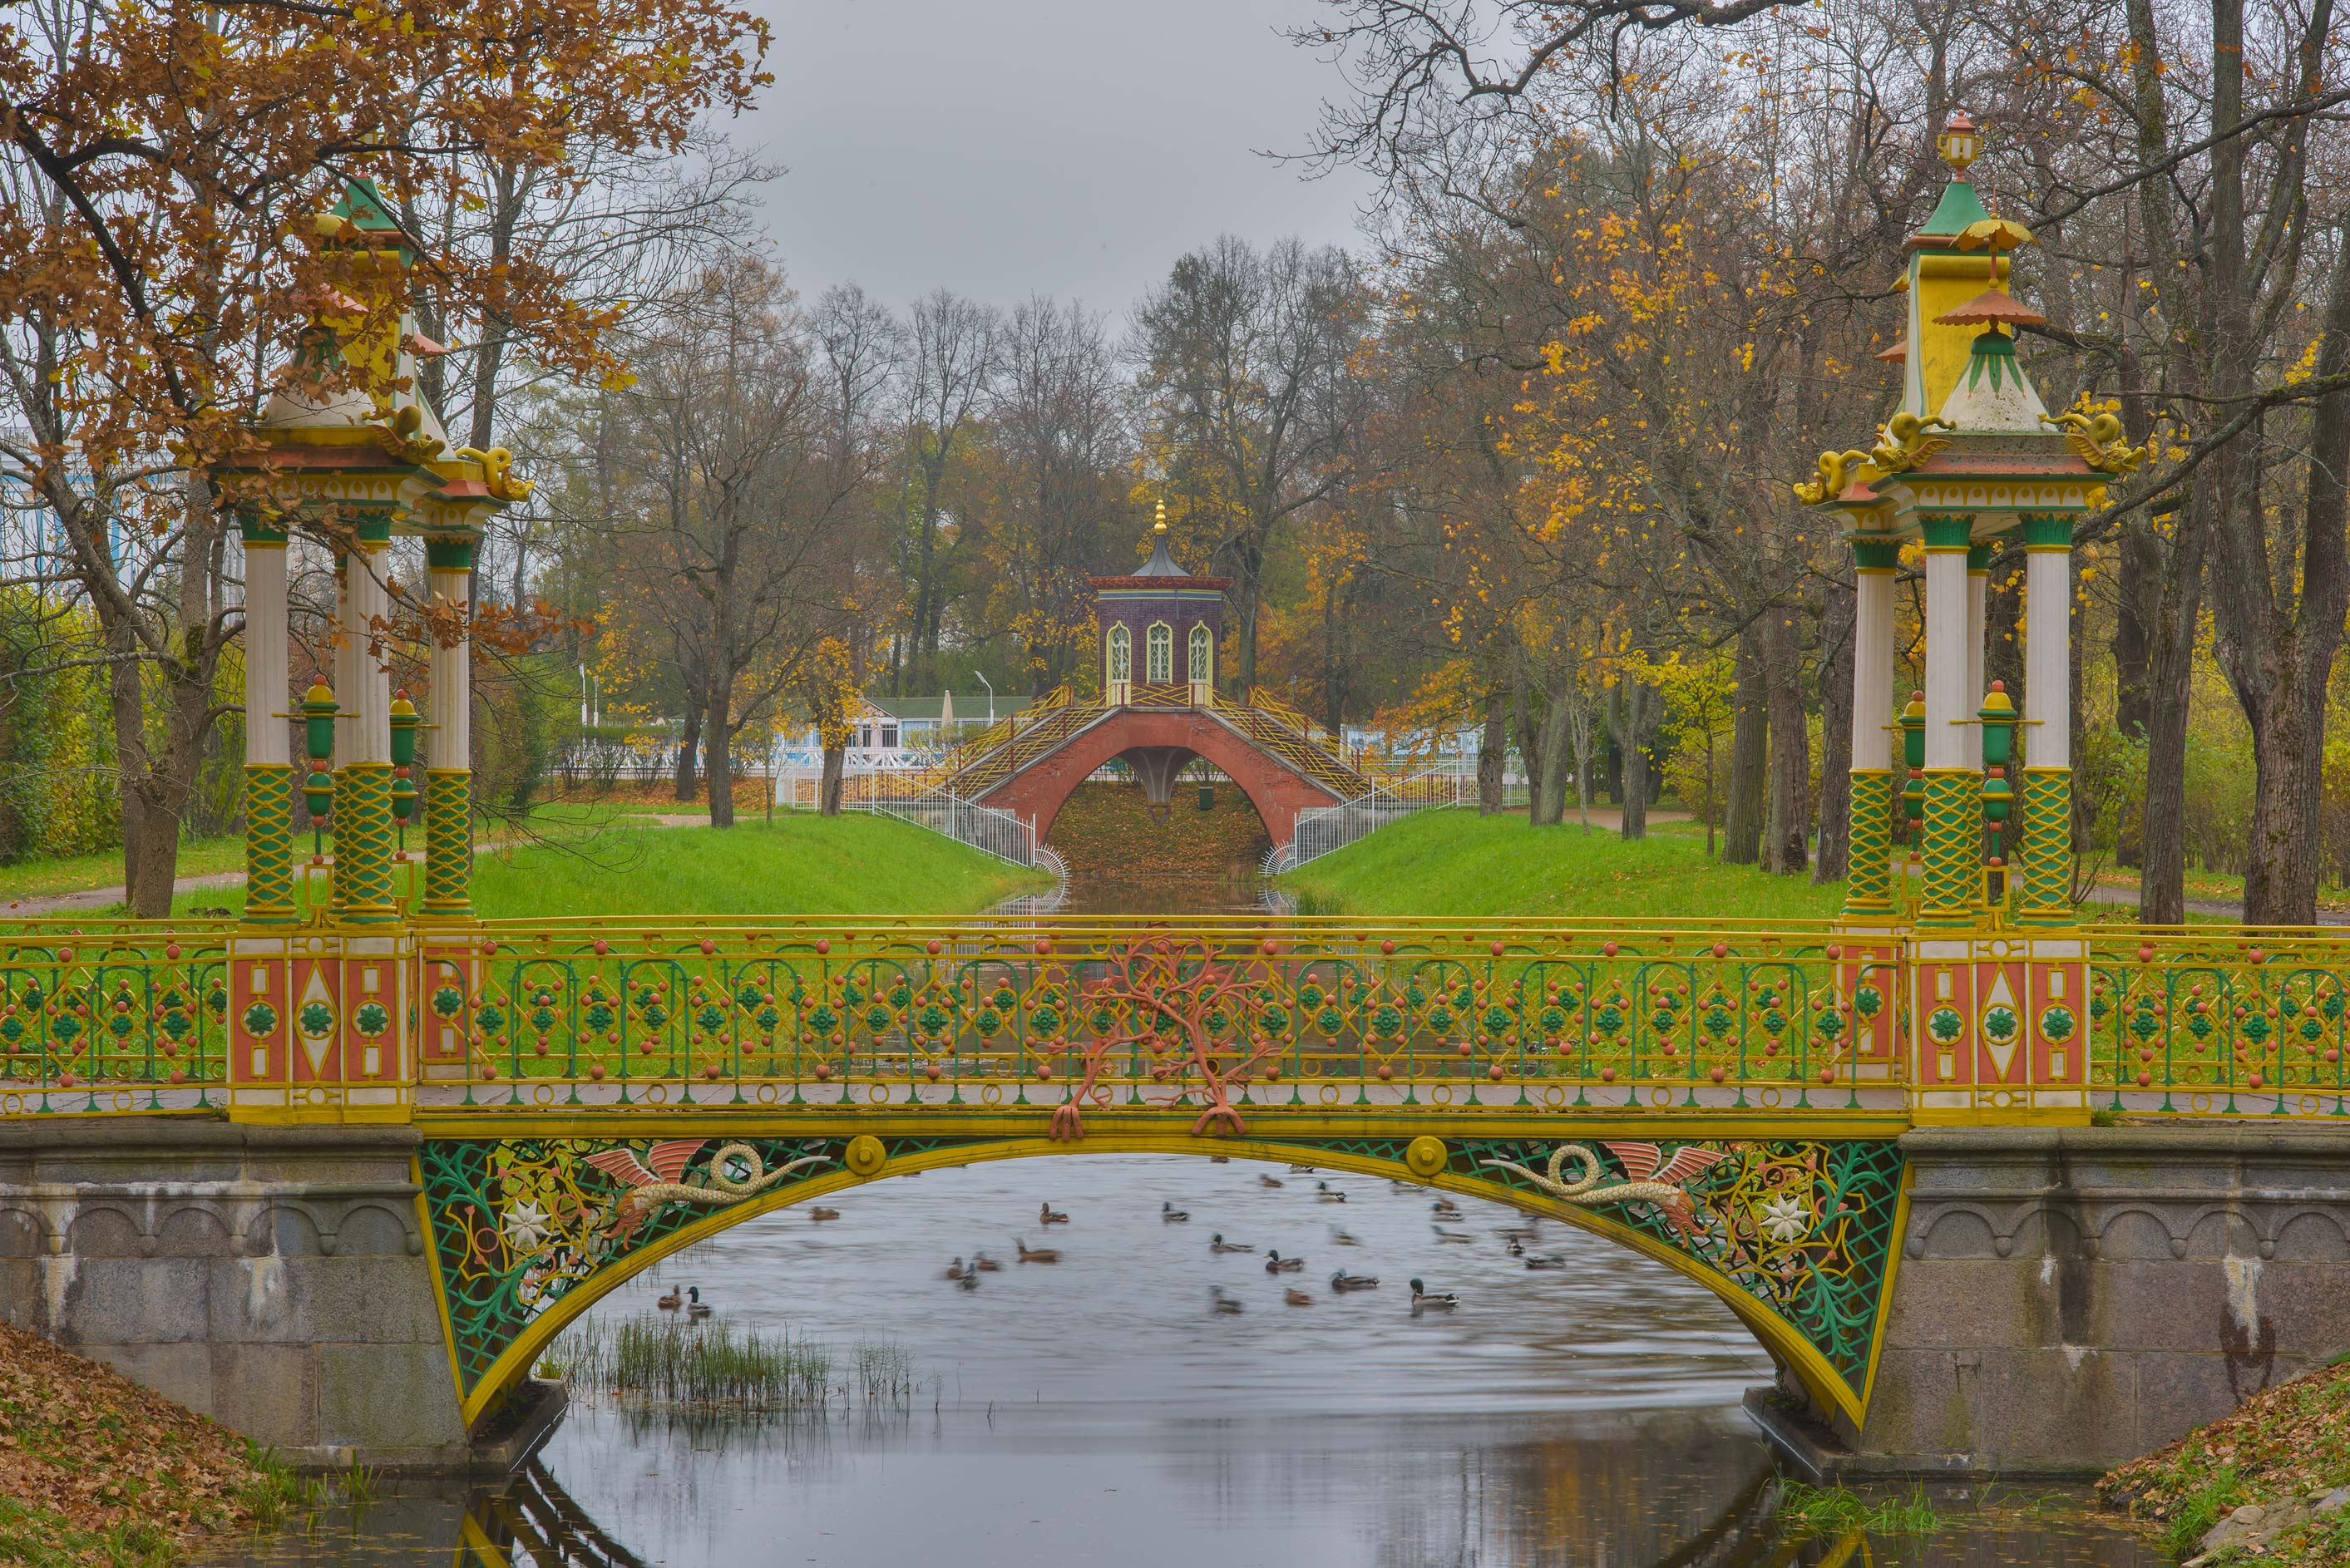 Chinese and Cross bridges in Alexander Palace...Selo) near St.Petersburg, Russia